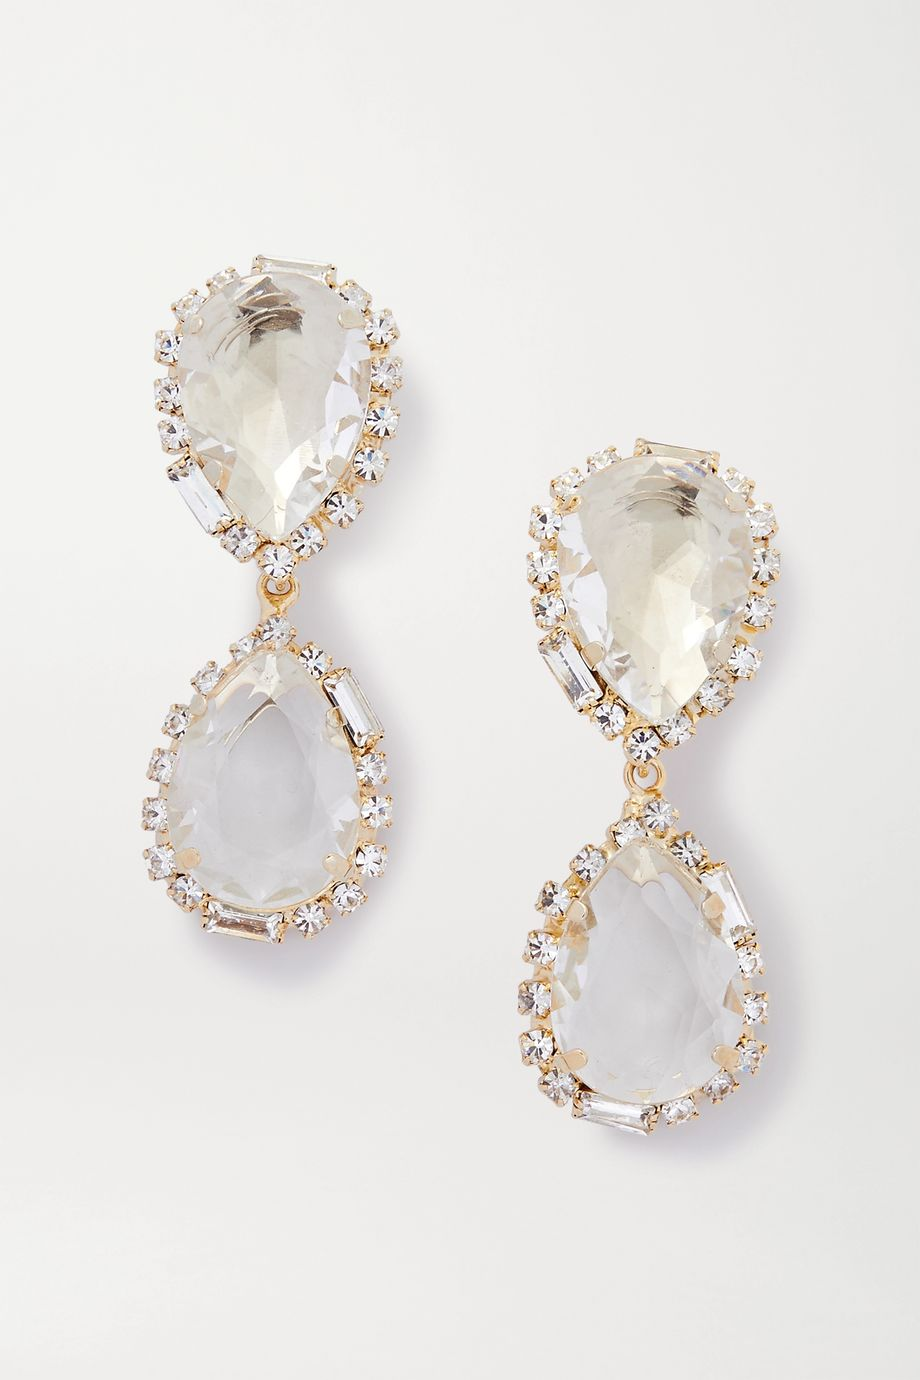 Rosantica Cuori gold-tone and crystal clip earrings